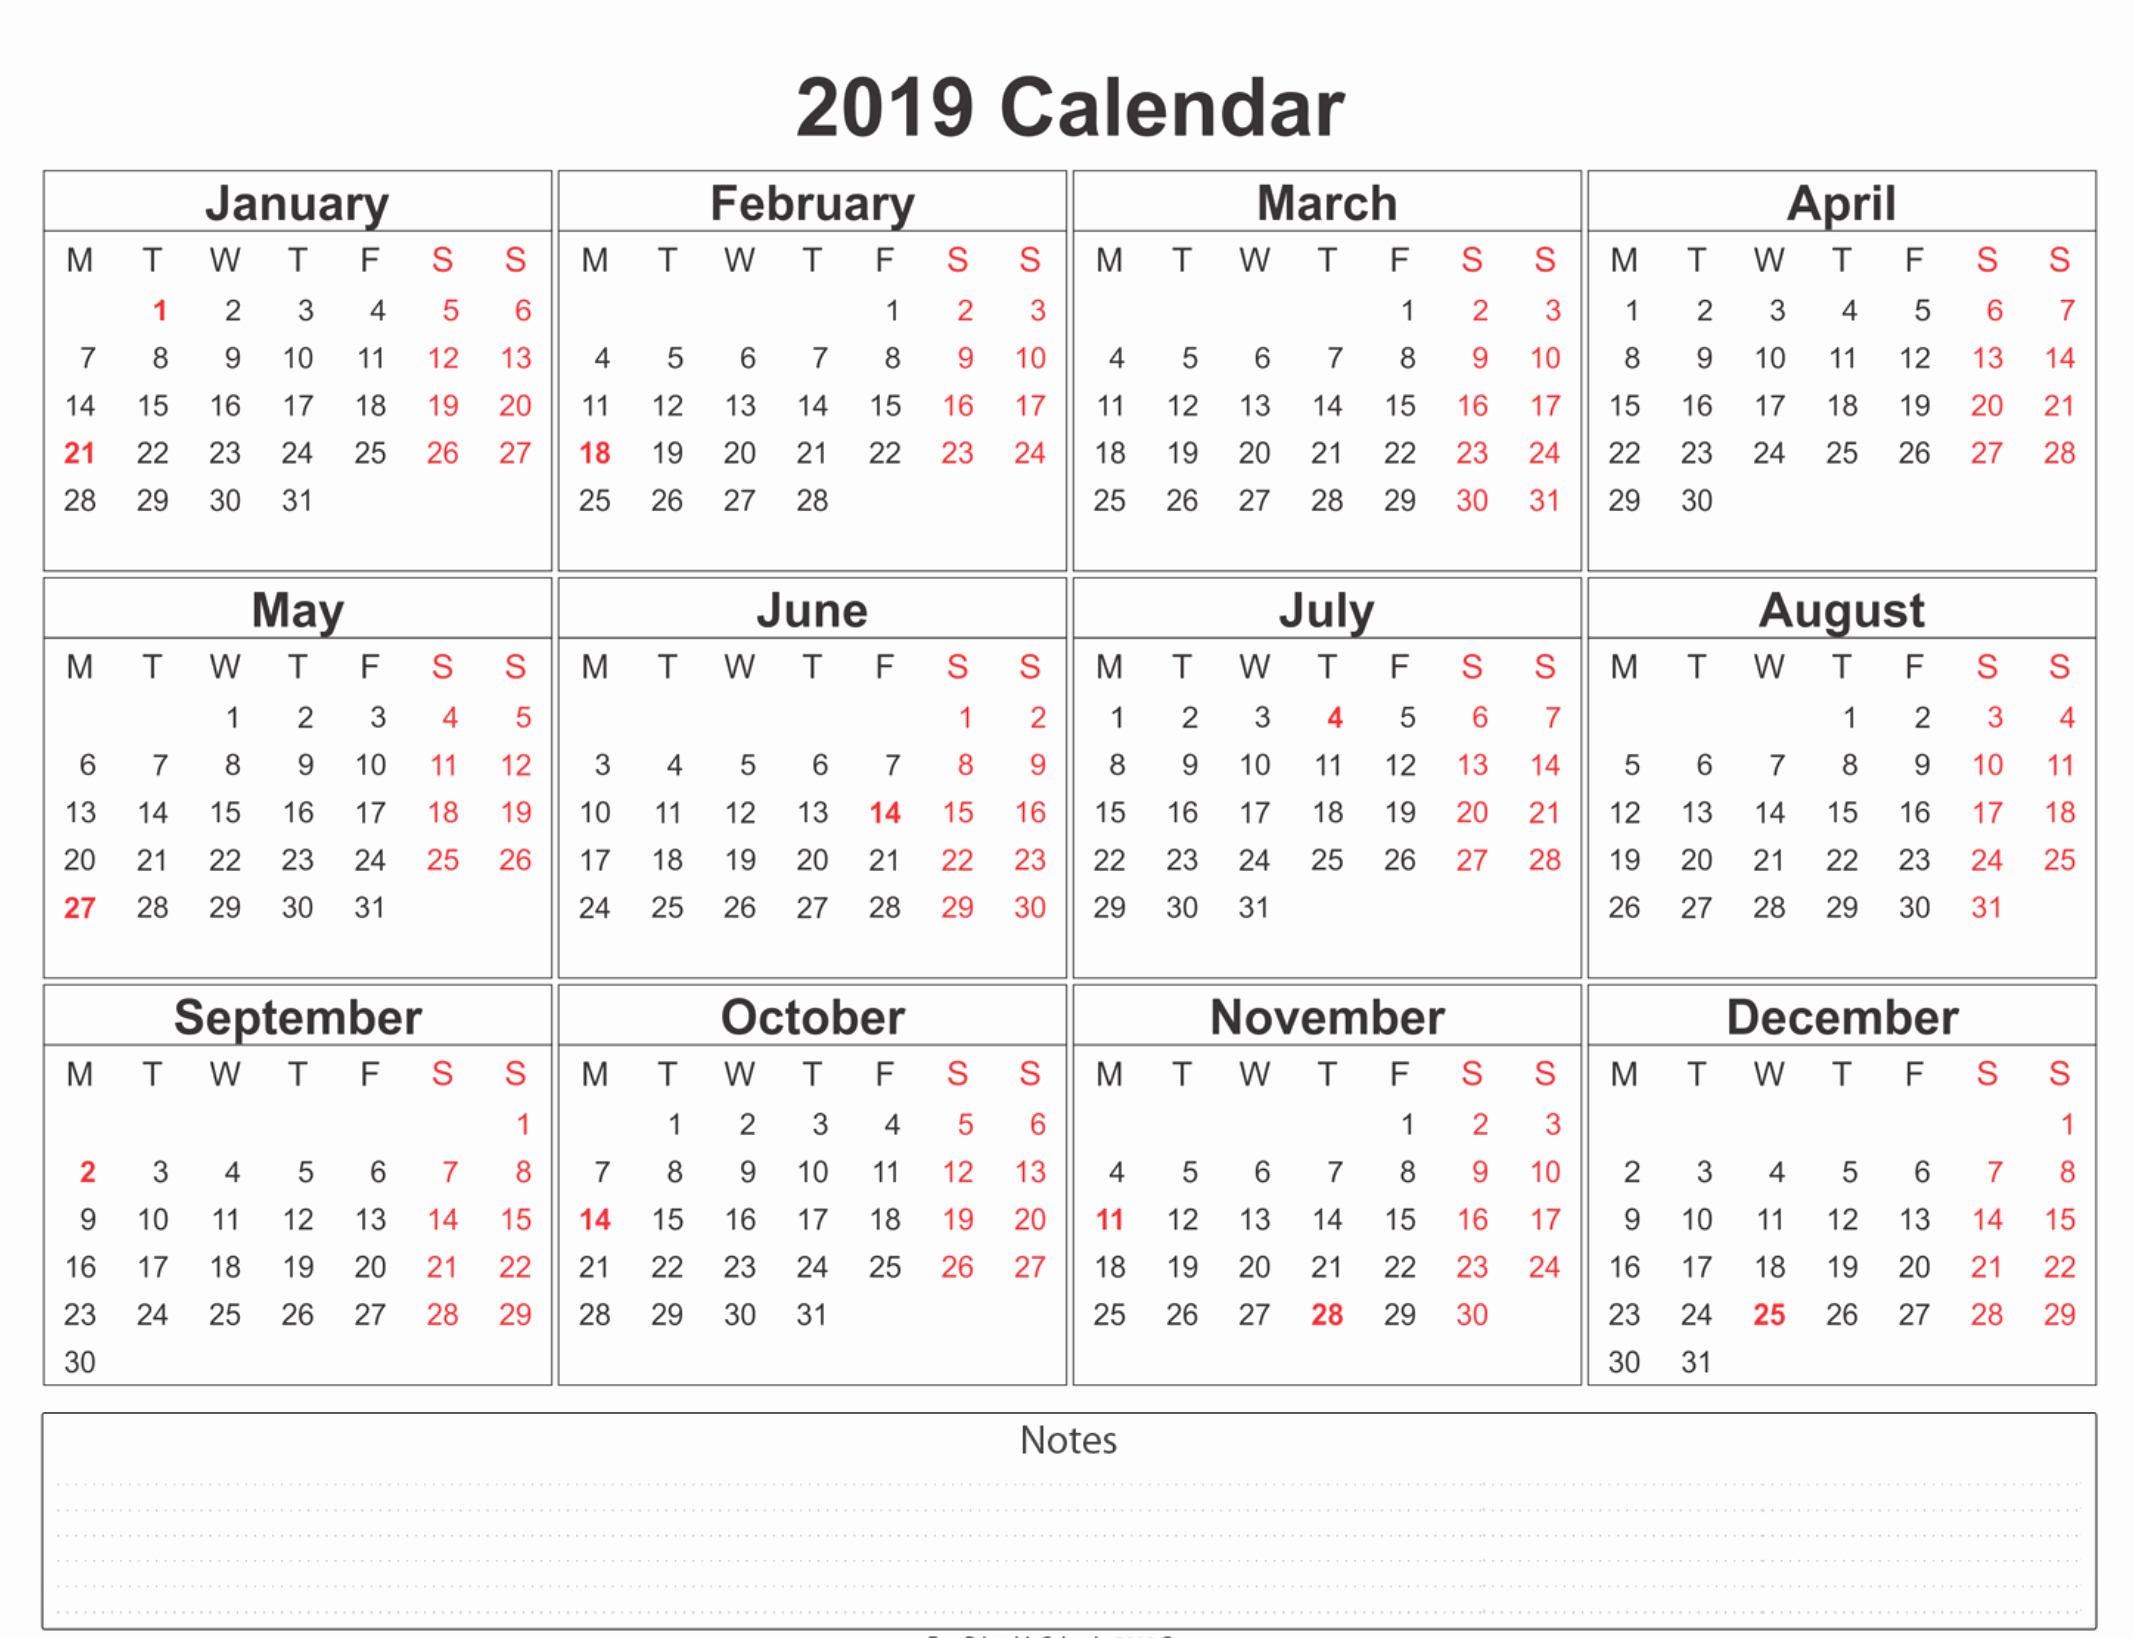 Free Monthly Calendar Template 2019 Best Of 2019 Calendar Amazonaws